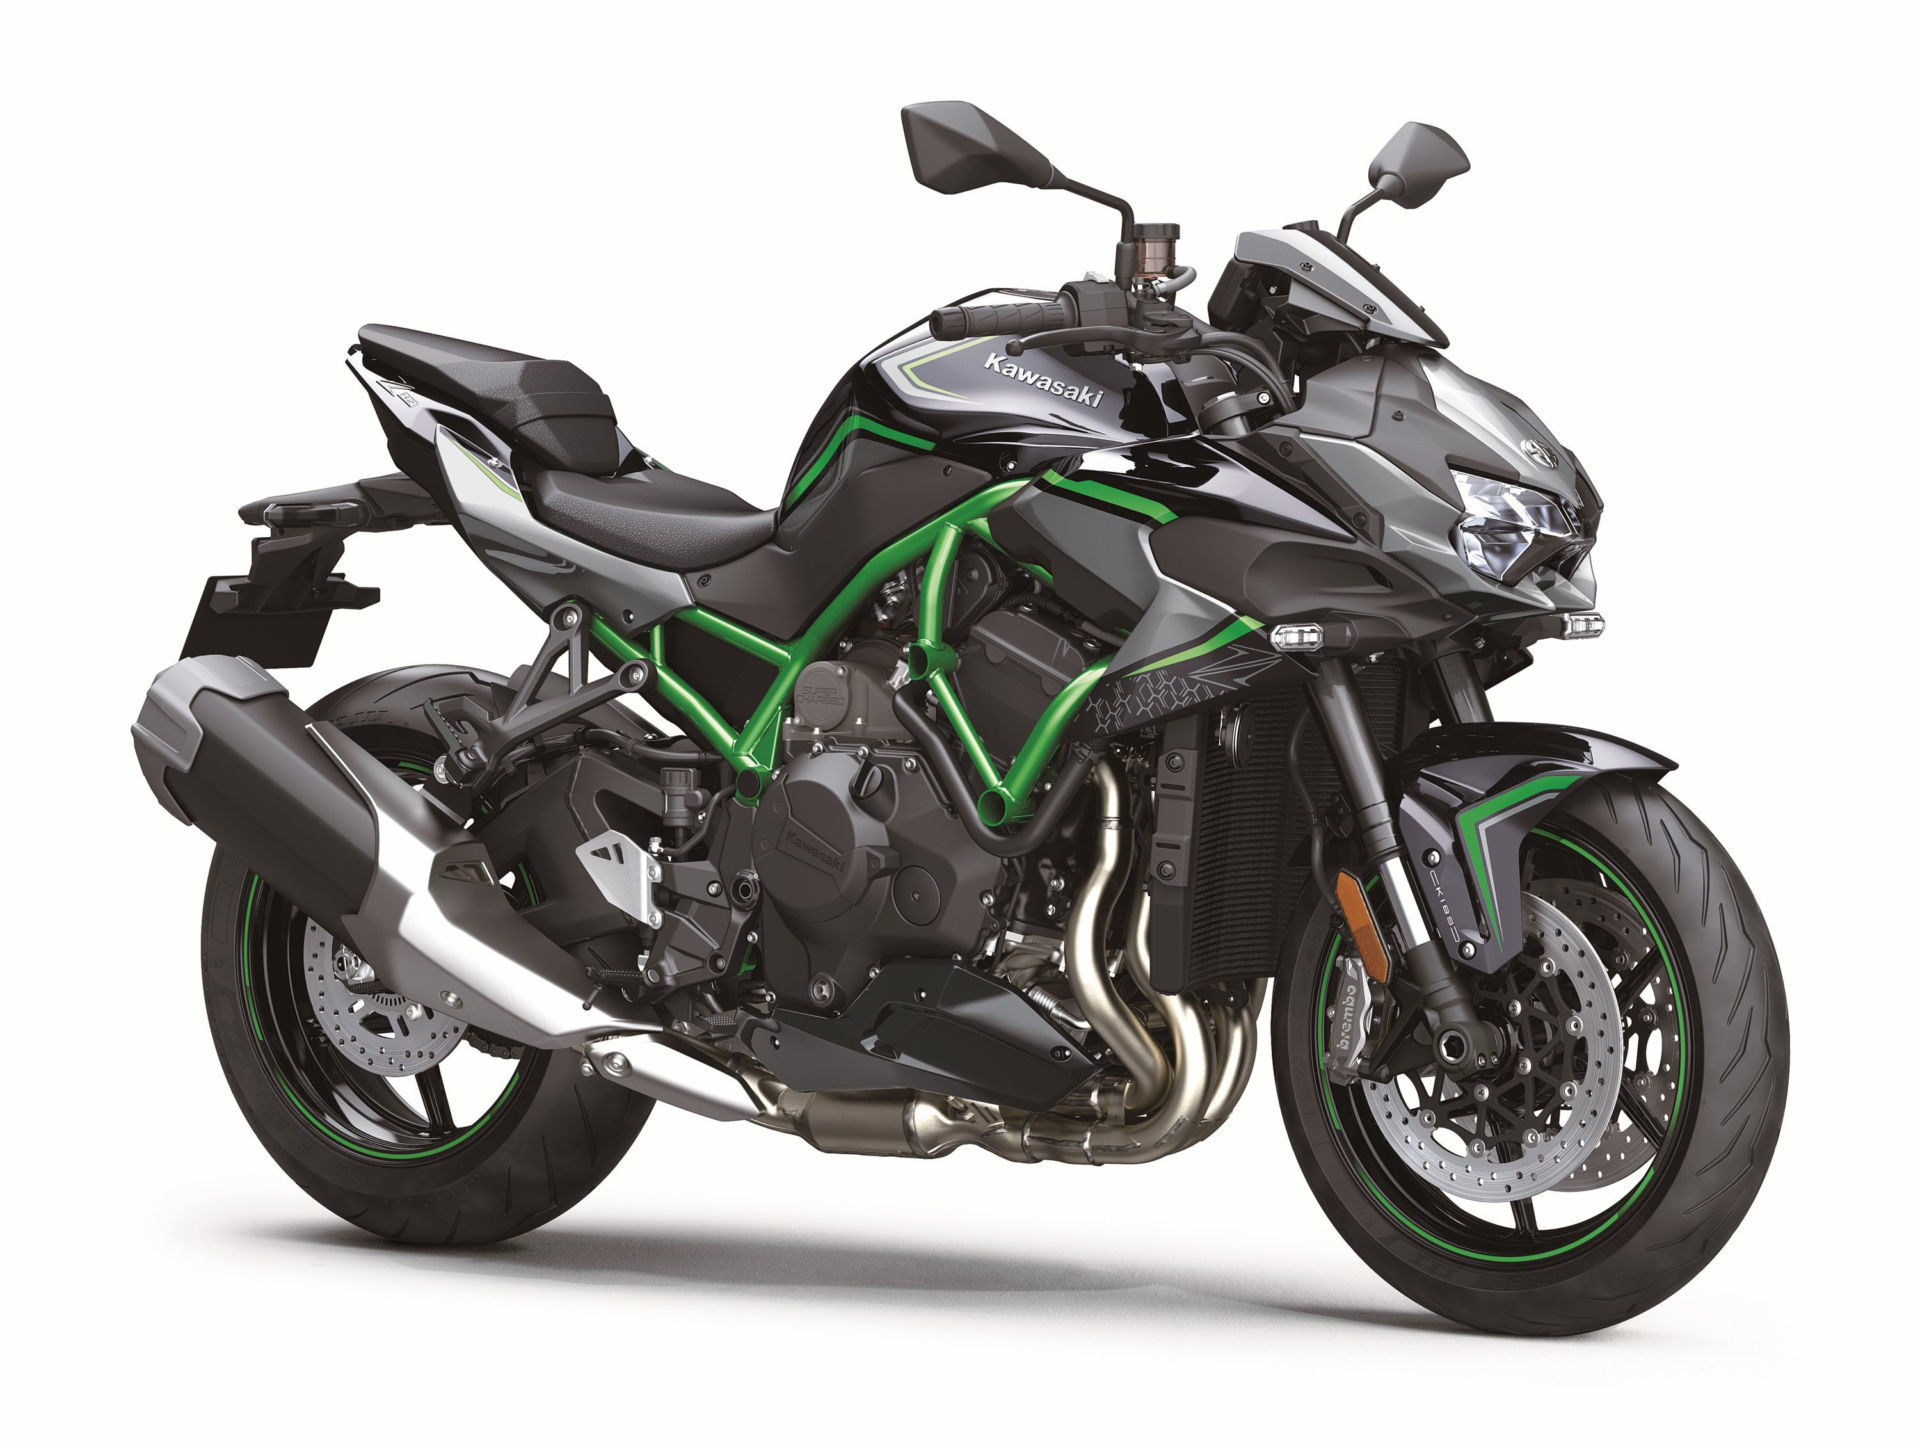 A 2020-model Kawasaki Z H2. Photo courtesy of Kawasaki.